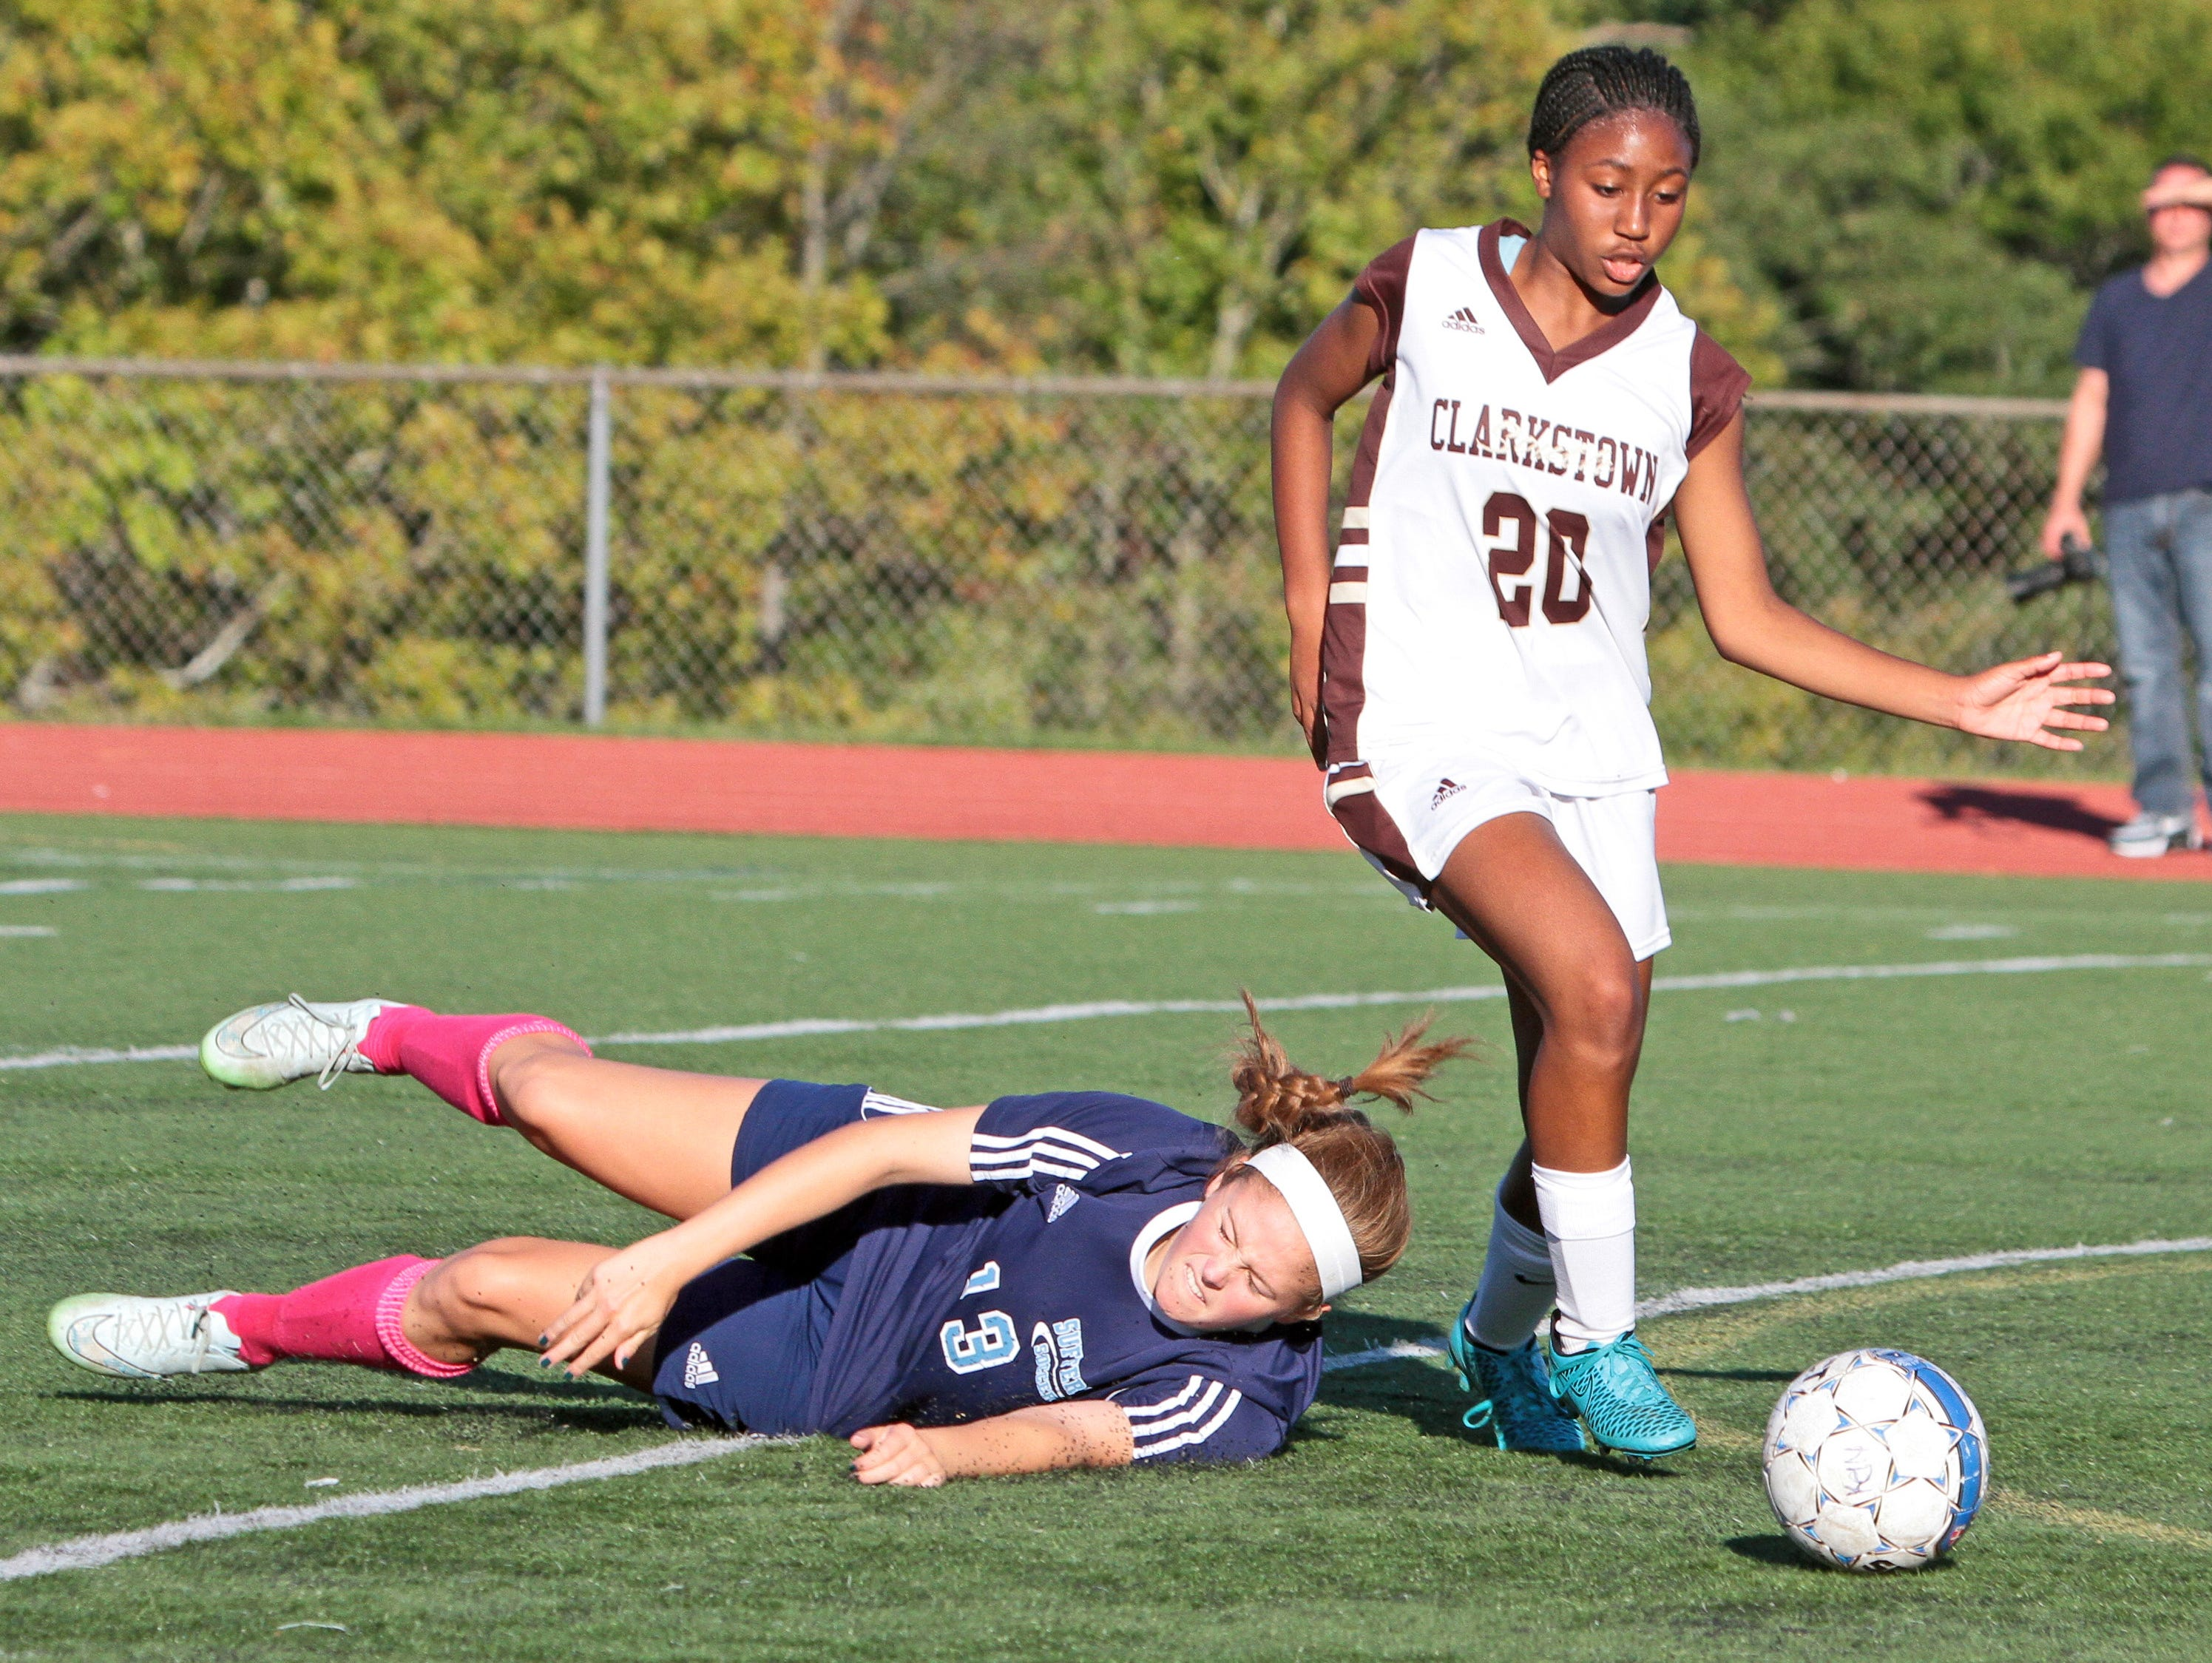 Clarkstown South's Sophia Jean-Charles leaves Suffern's Caleigh Cahoon behind during a varsity soccer game at Clarkstown South High School Oct. 6, 2015. Clarkstown South handed Suffern it's first loss of the season with a 4-1 victory.